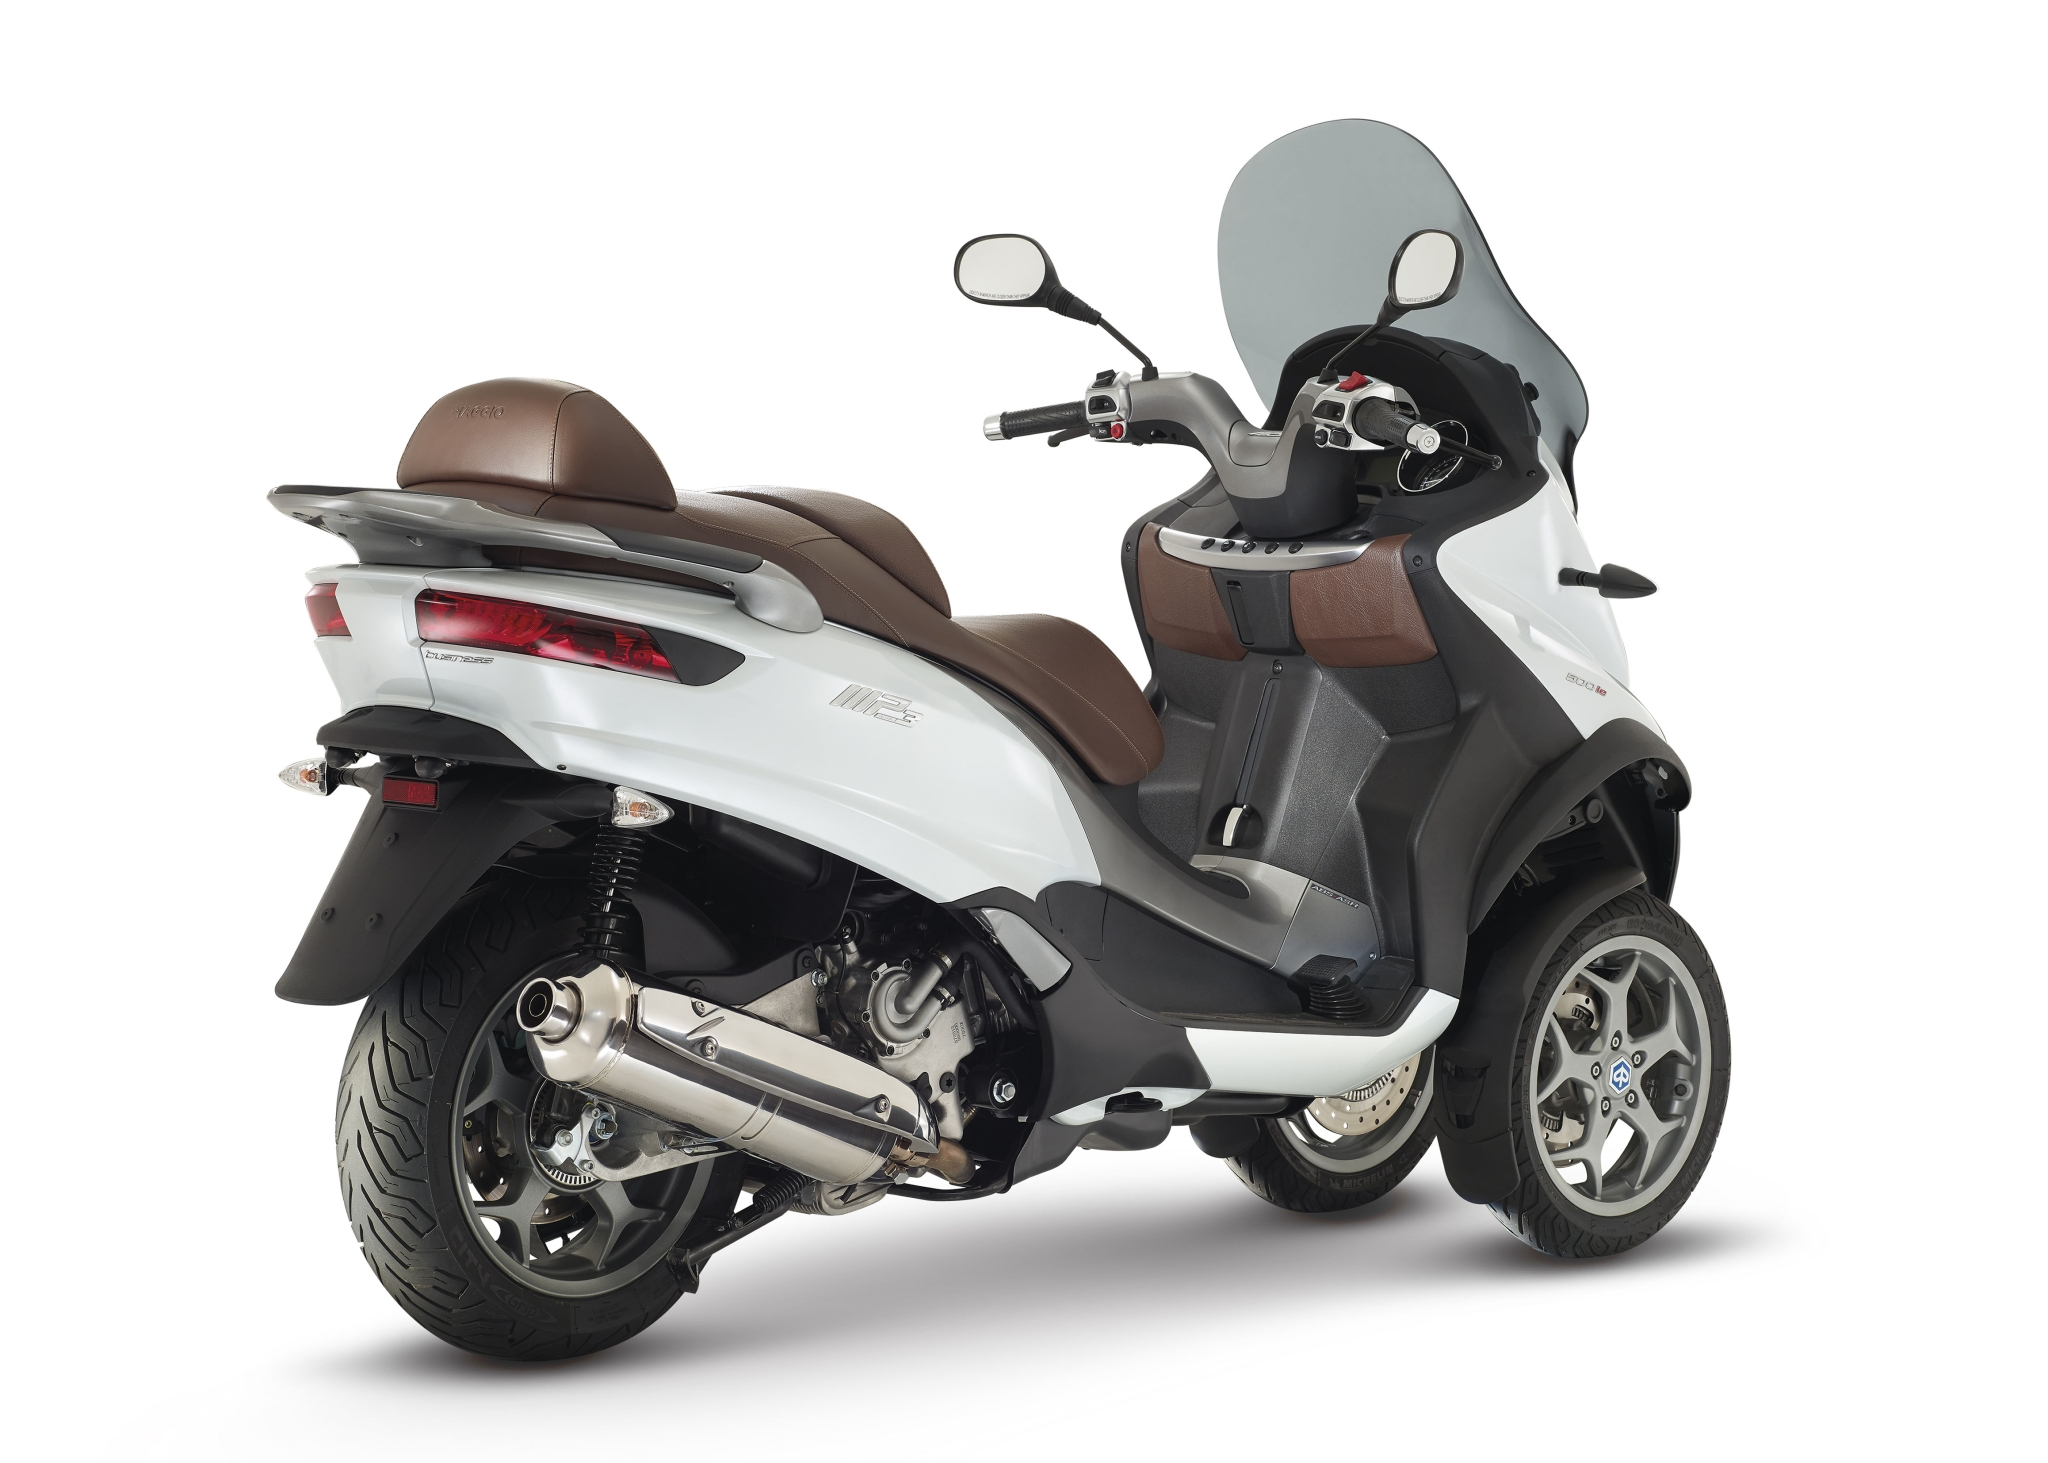 2015 piaggio mp3 500 3-wheeled scooter is here - autoevolution